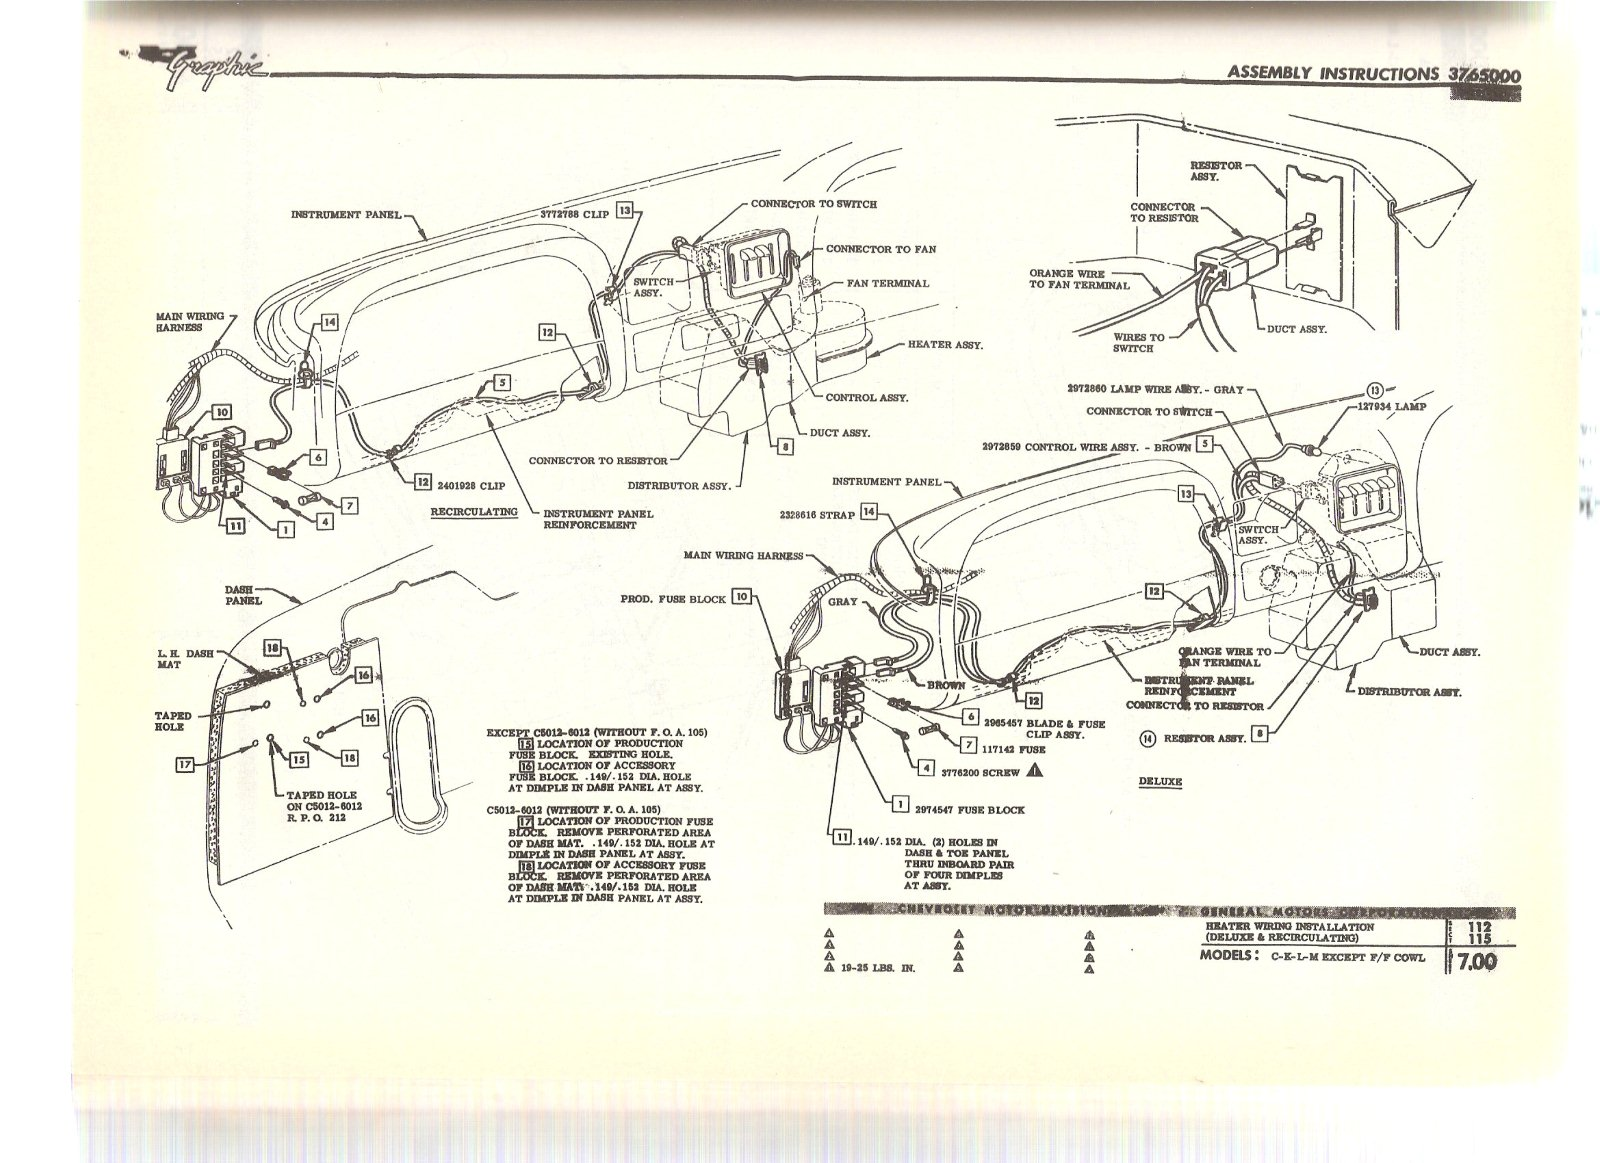 1960 1961 Wiring Diagram?resize\\\=840%2C611 1961 chevy apache wiring diagram wiring diagrams 61 apache wiring diagram at eliteediting.co